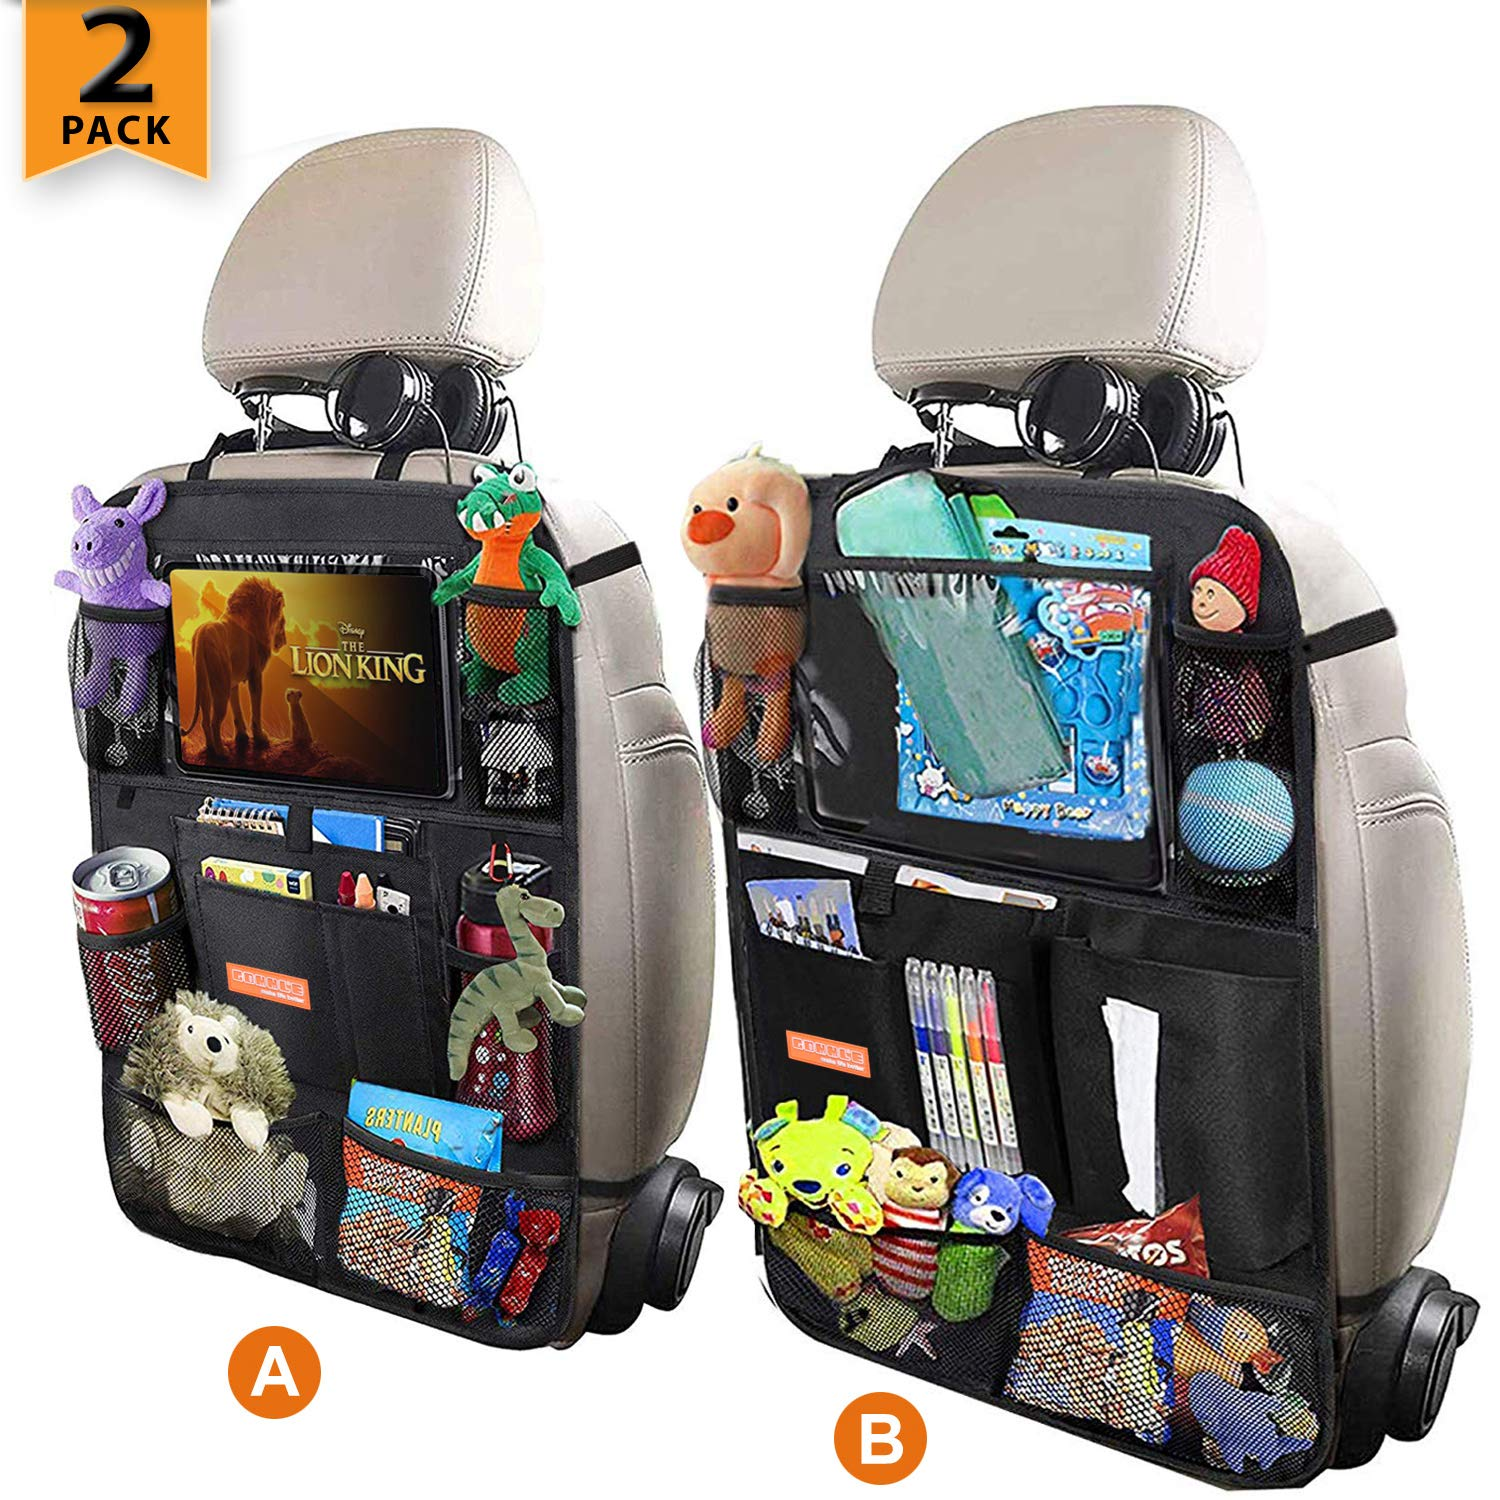 Car Backseat Organizer for Kick Mat, Upgraded Extended Size and Larger Pockets Car Back Seat Protector with 12'' Screen Tablet Holder + 19 Storage Pockets for Toy Bottle Tissue Box Travel Accessories by GOMMLE